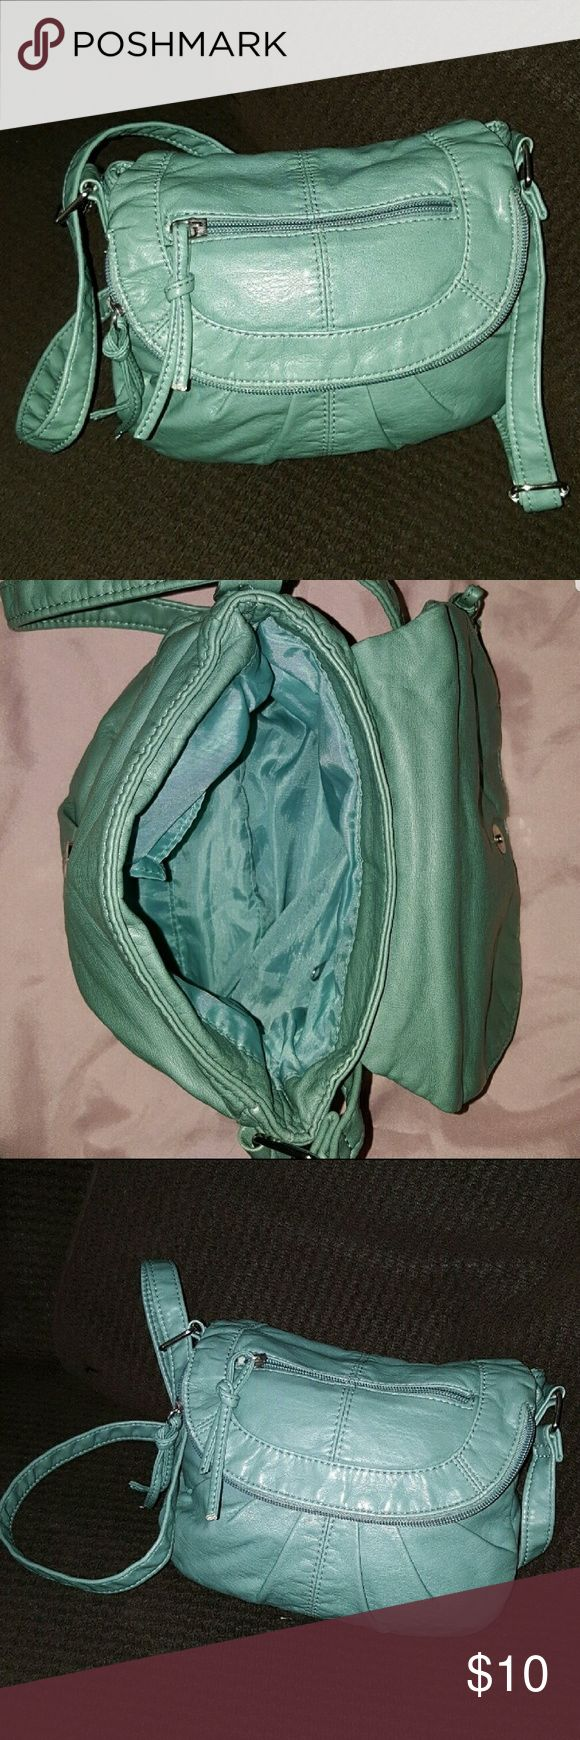 Dark mint purse Dark mint green bag with adjustable shoulder strap. In great condition. Bags